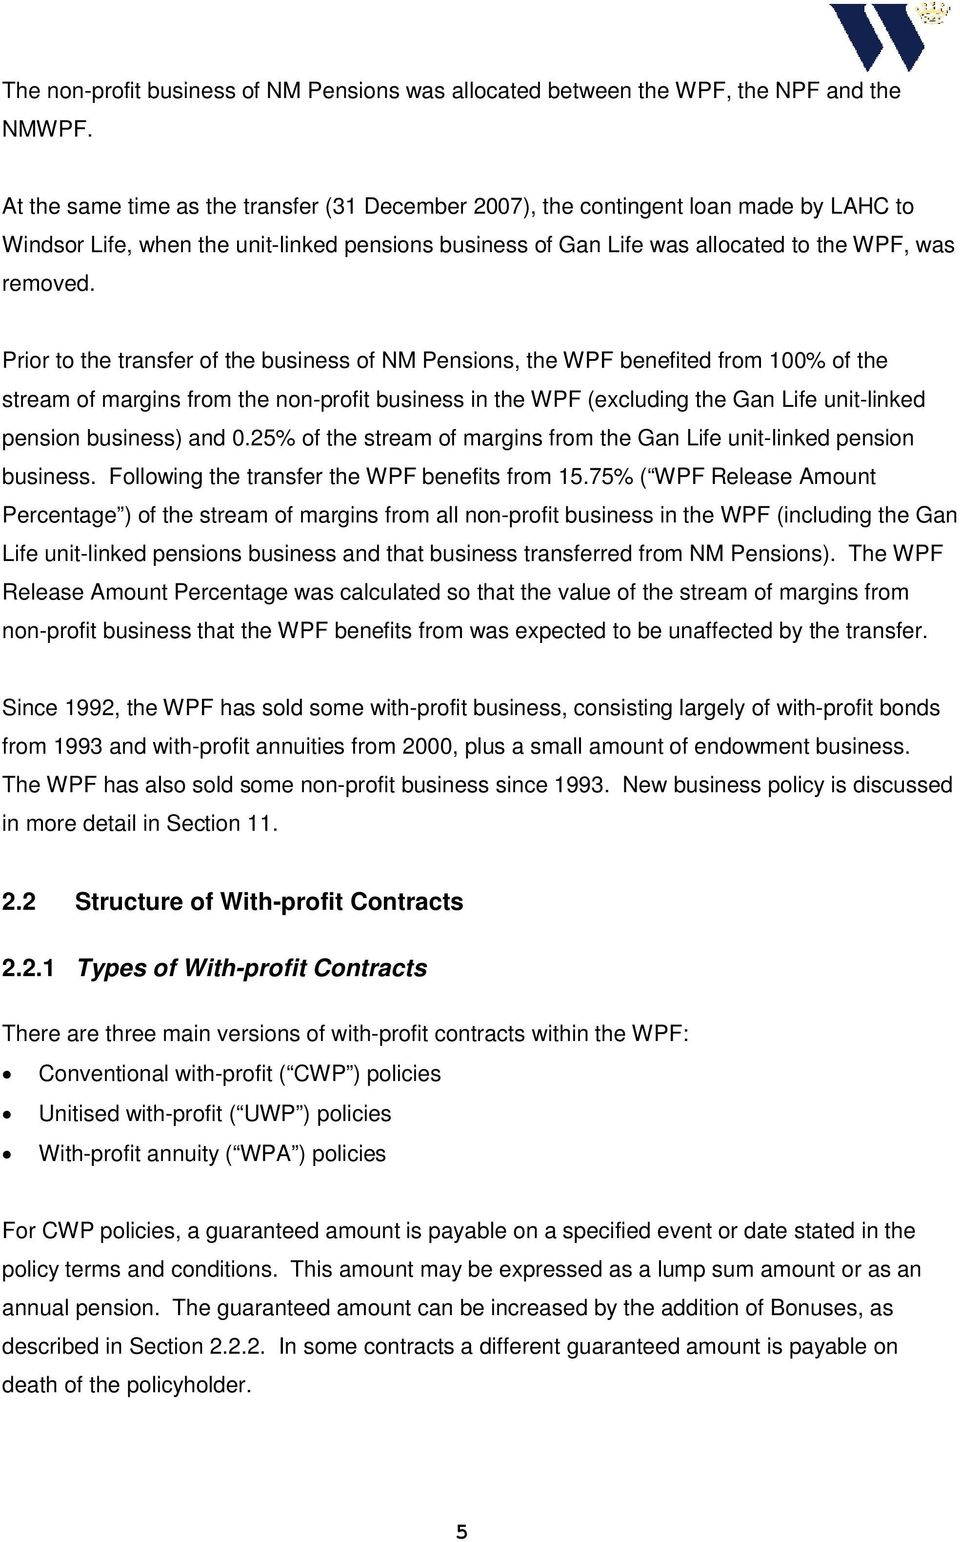 Prior to the transfer of the business of NM Pensions, the WPF benefited from 100% of the stream of margins from the non-profit business in the WPF (excluding the Gan Life unit-linked pension